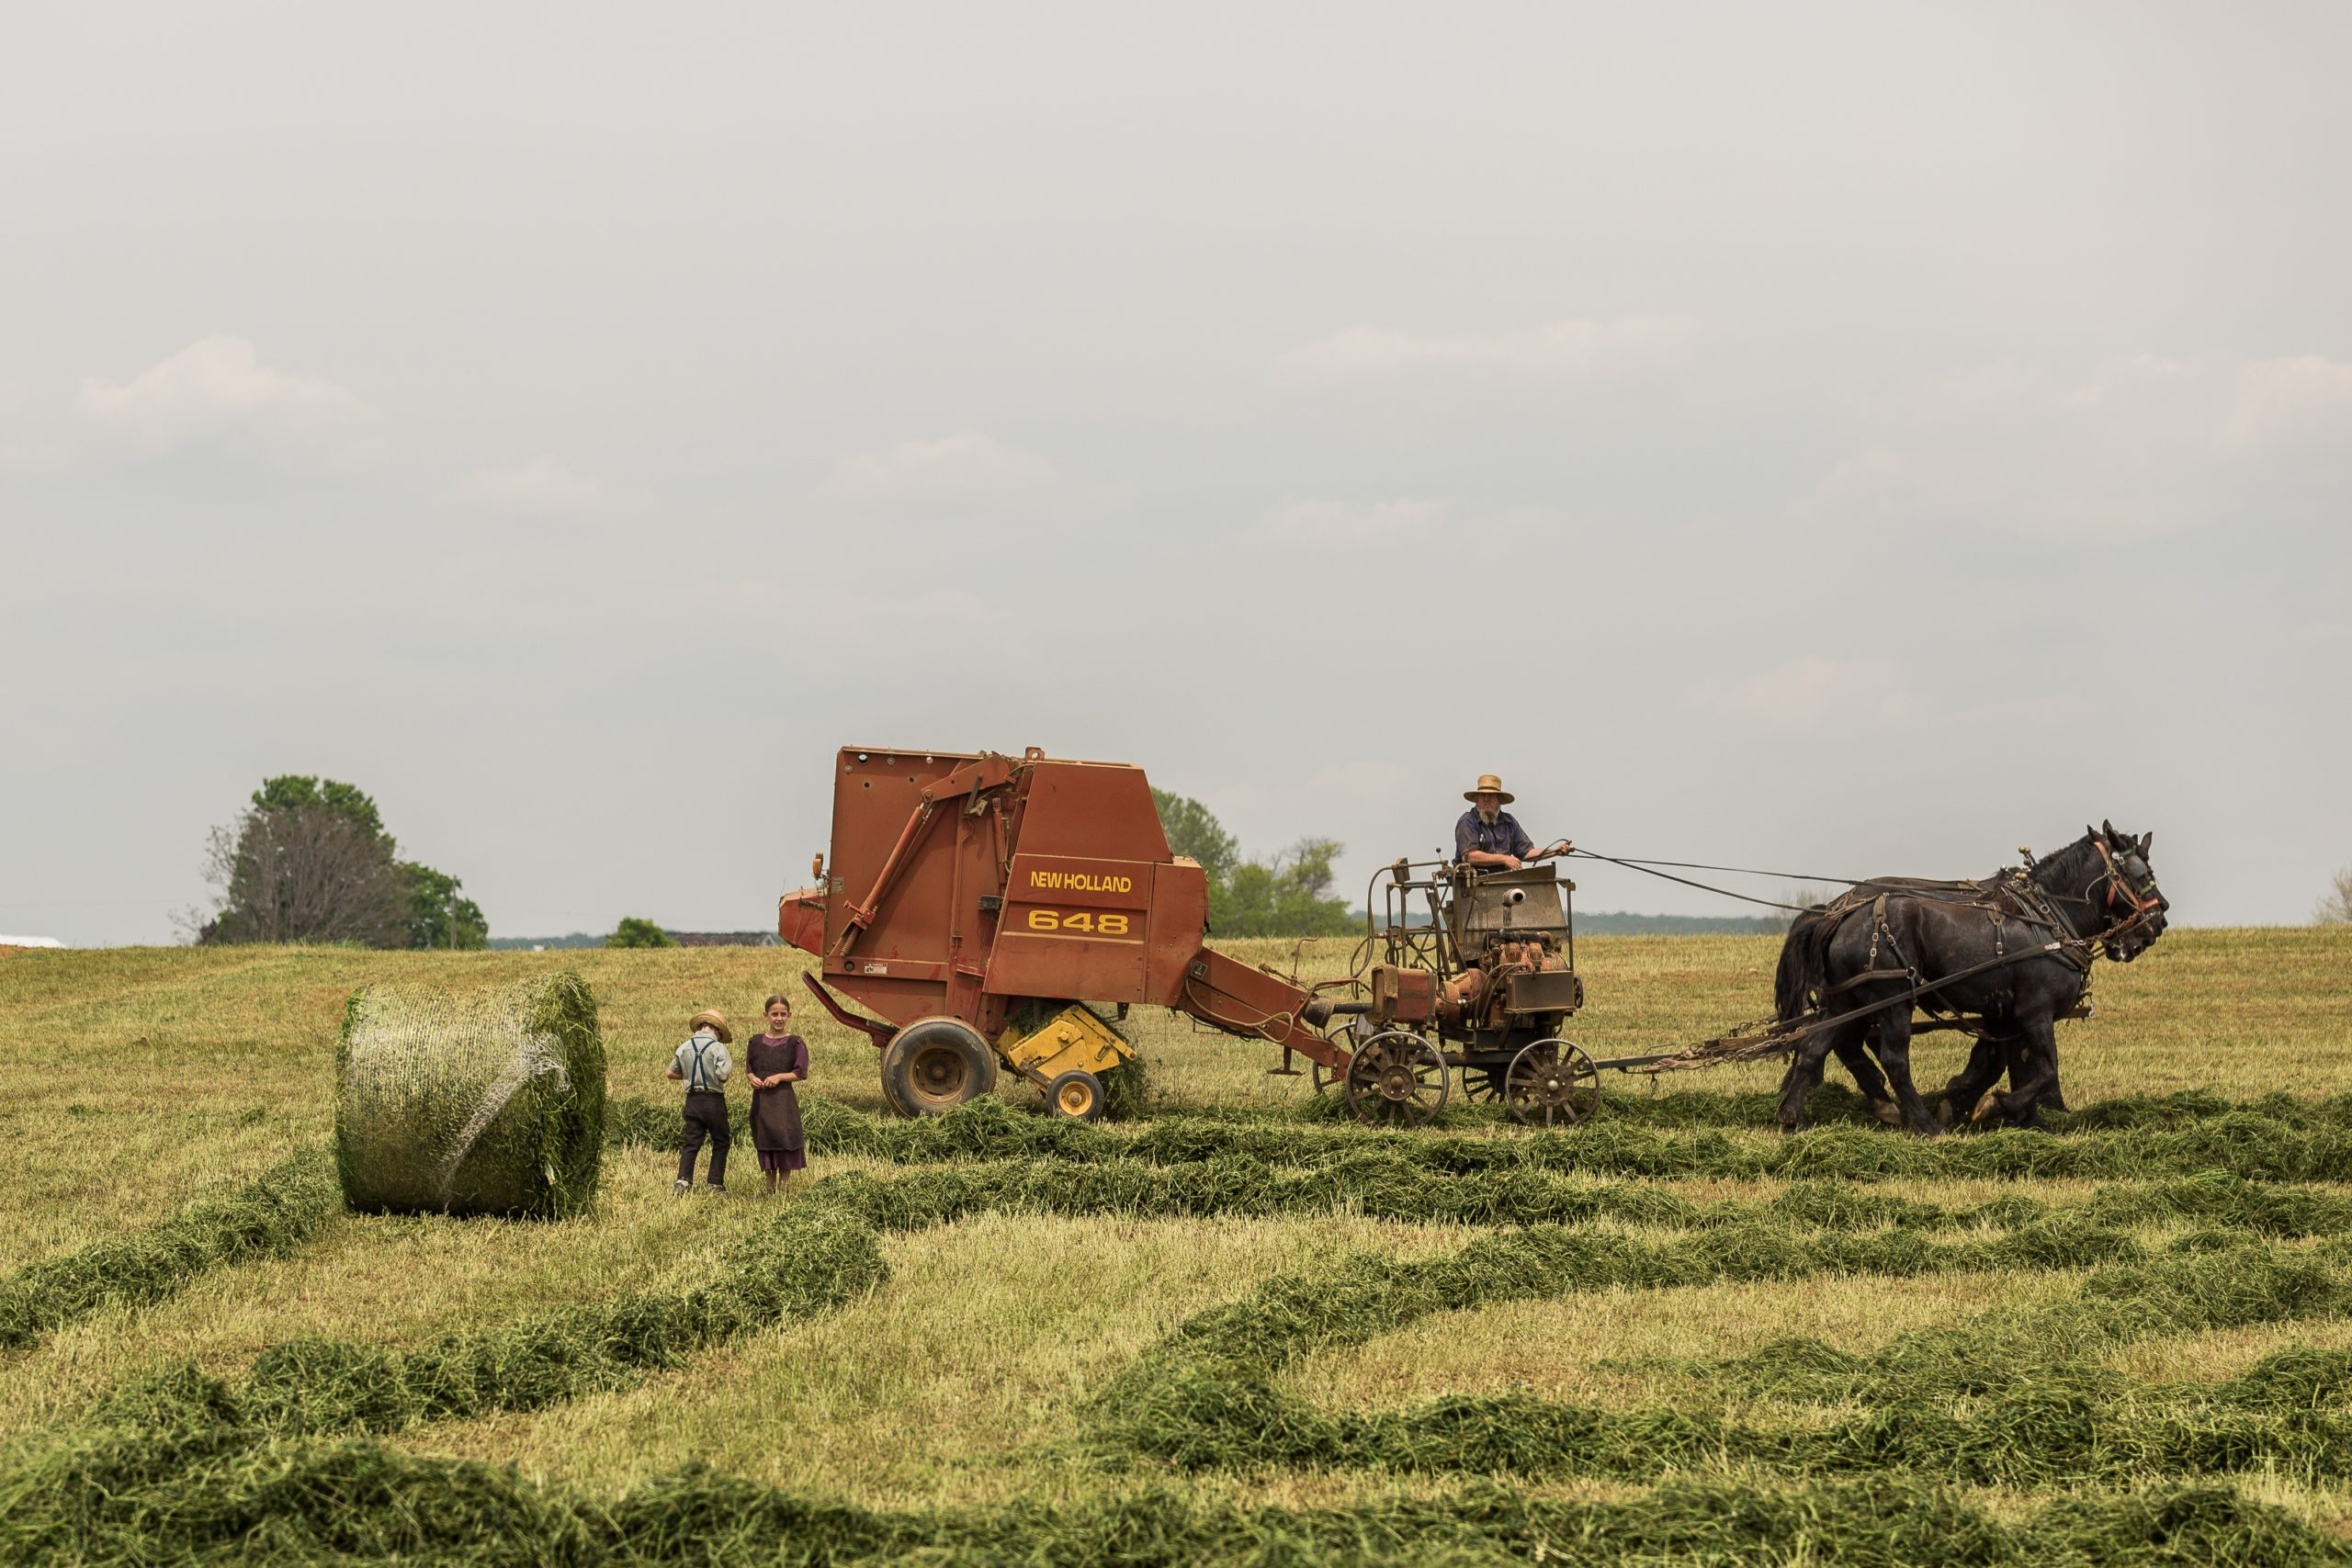 Amish Bailing Hay With a Team of Horses - Farm Background Wallpaper Pictures